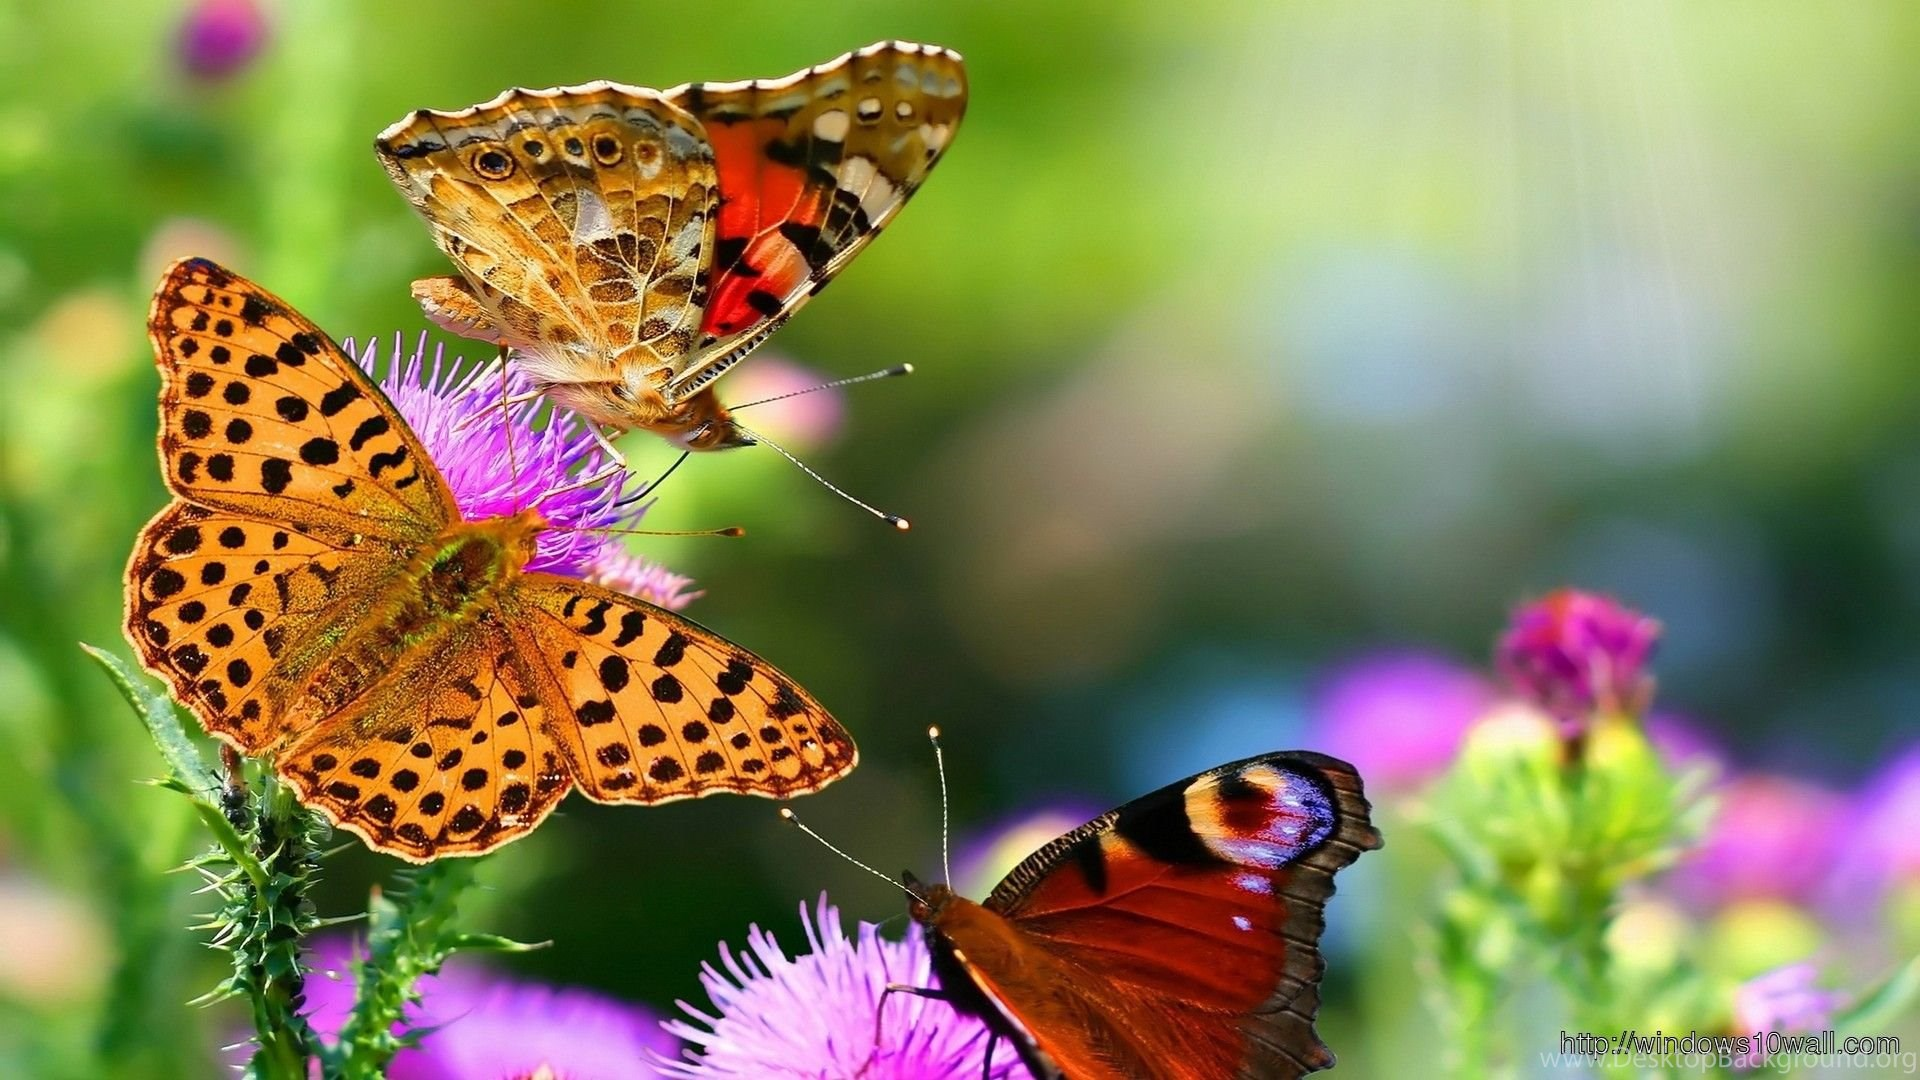 Nature Animal Hd Wallpapers - Windows 10 Wallpapers ...